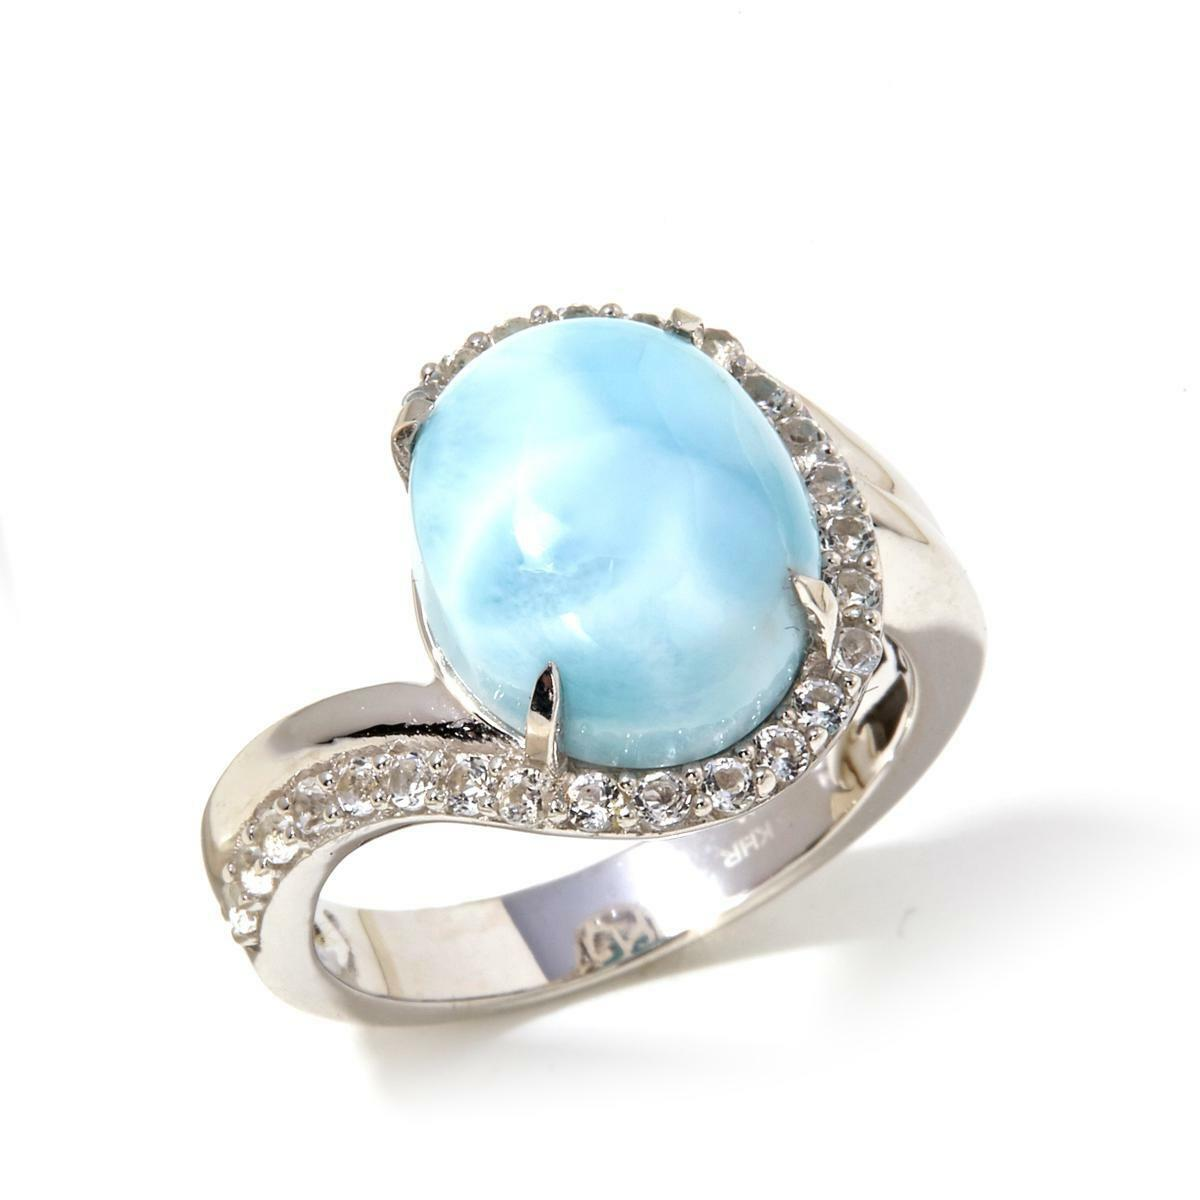 COLLEEN LOPEZ  CARIBBEAN COOL  STERLING LARIMAR AND WHITE TOPAZ RING SIZE 8 HSN